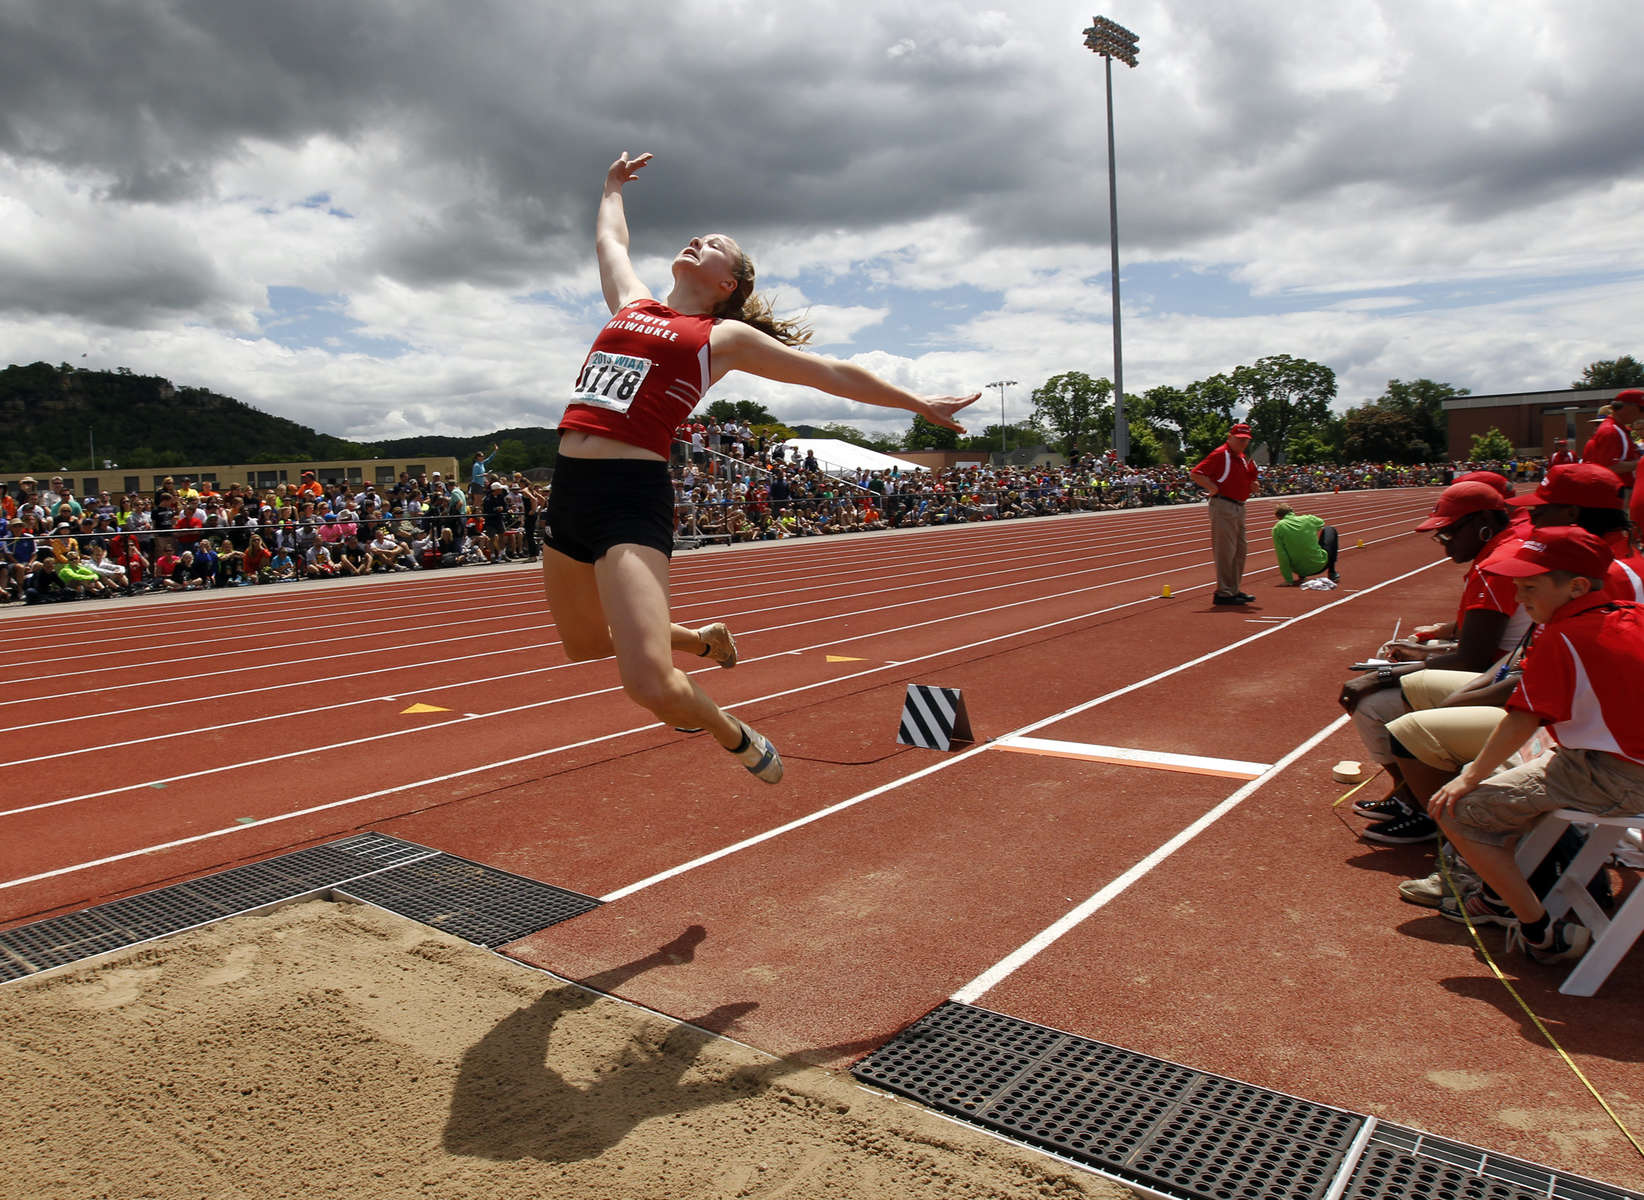 South Milwaukee's Mecaela Creighton competes in the Division 1 girls long jump at the WIAA 2013 Boys & Girls State Track and Field Division.